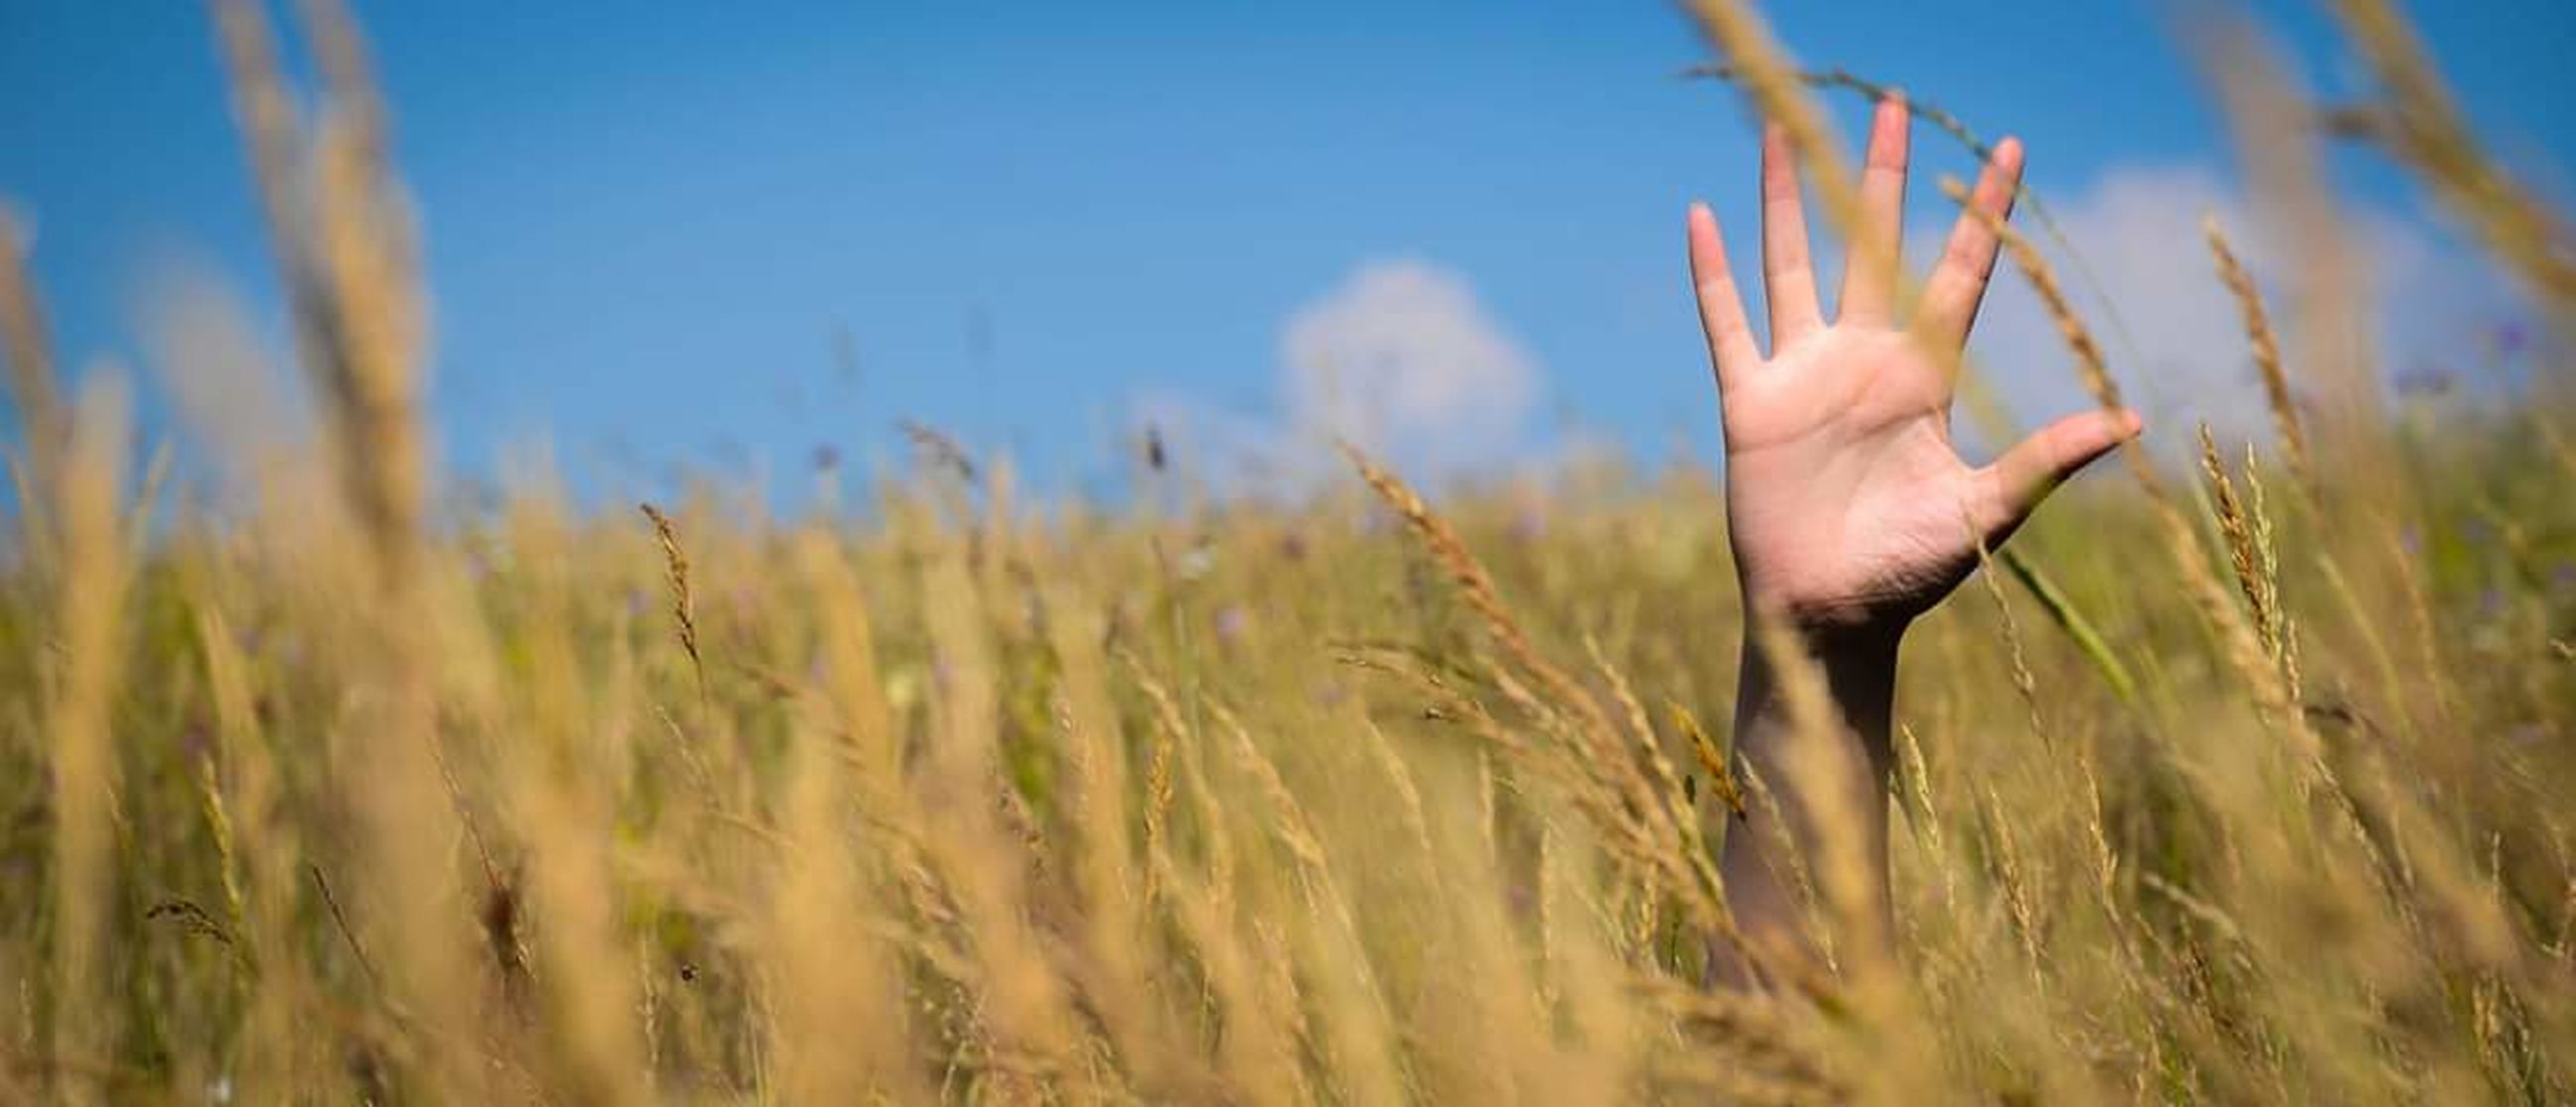 human body part, field, hand, human hand, land, plant, one person, agriculture, crop, selective focus, body part, cereal plant, wheat, nature, growth, day, sky, landscape, rural scene, outdoors, human limb, finger, human arm, arms raised